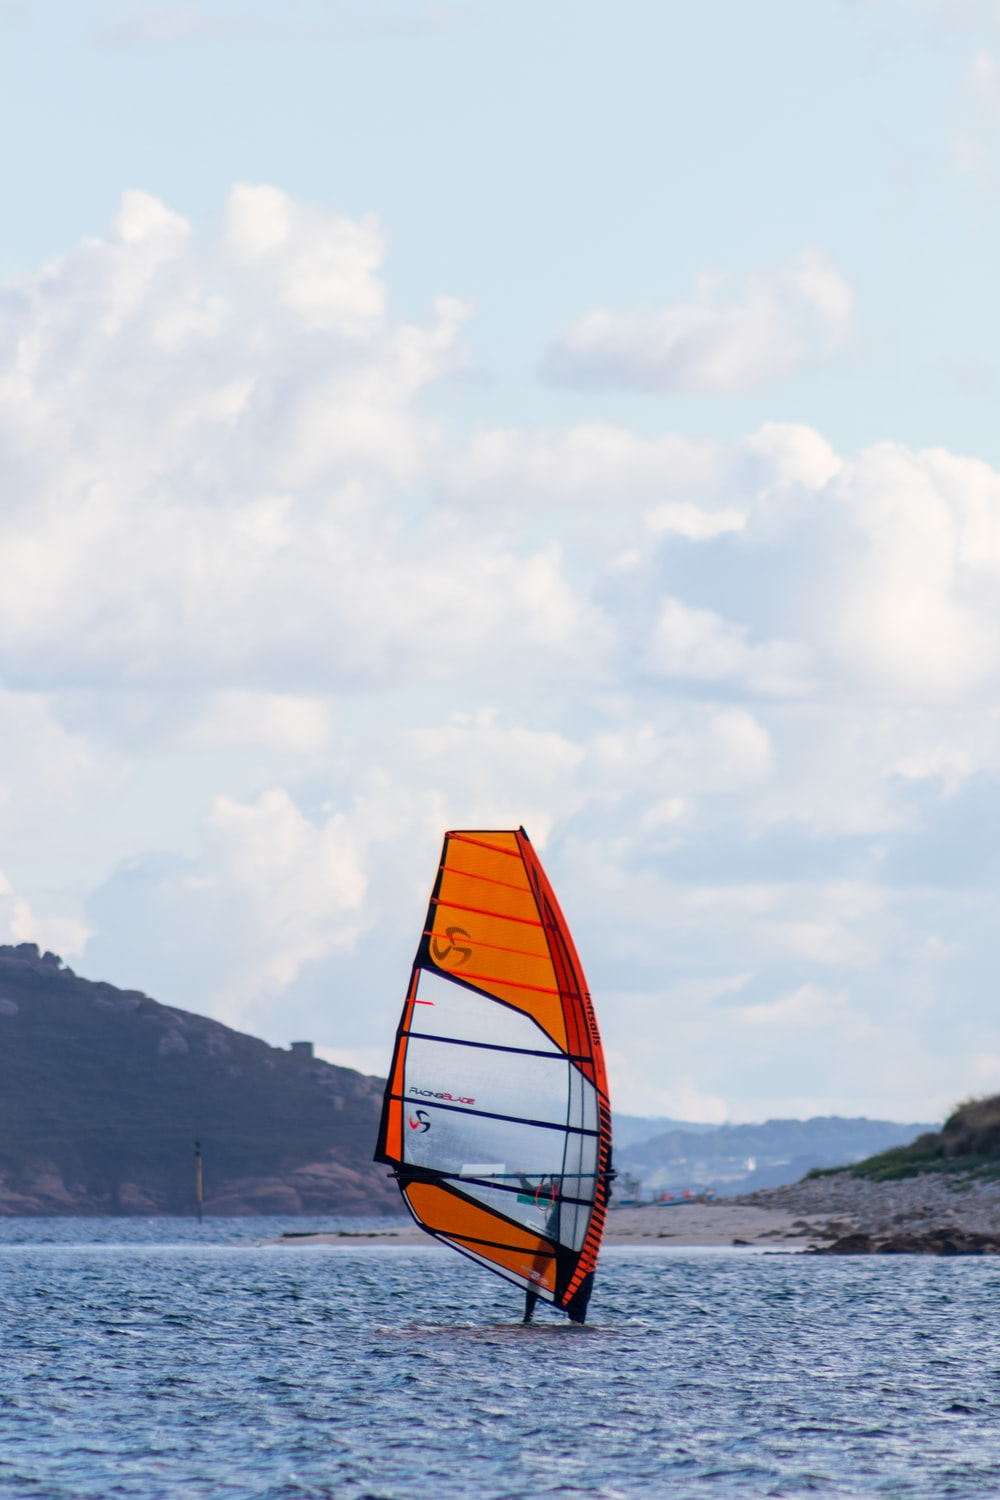 orange and white boat on sea shore during daytime